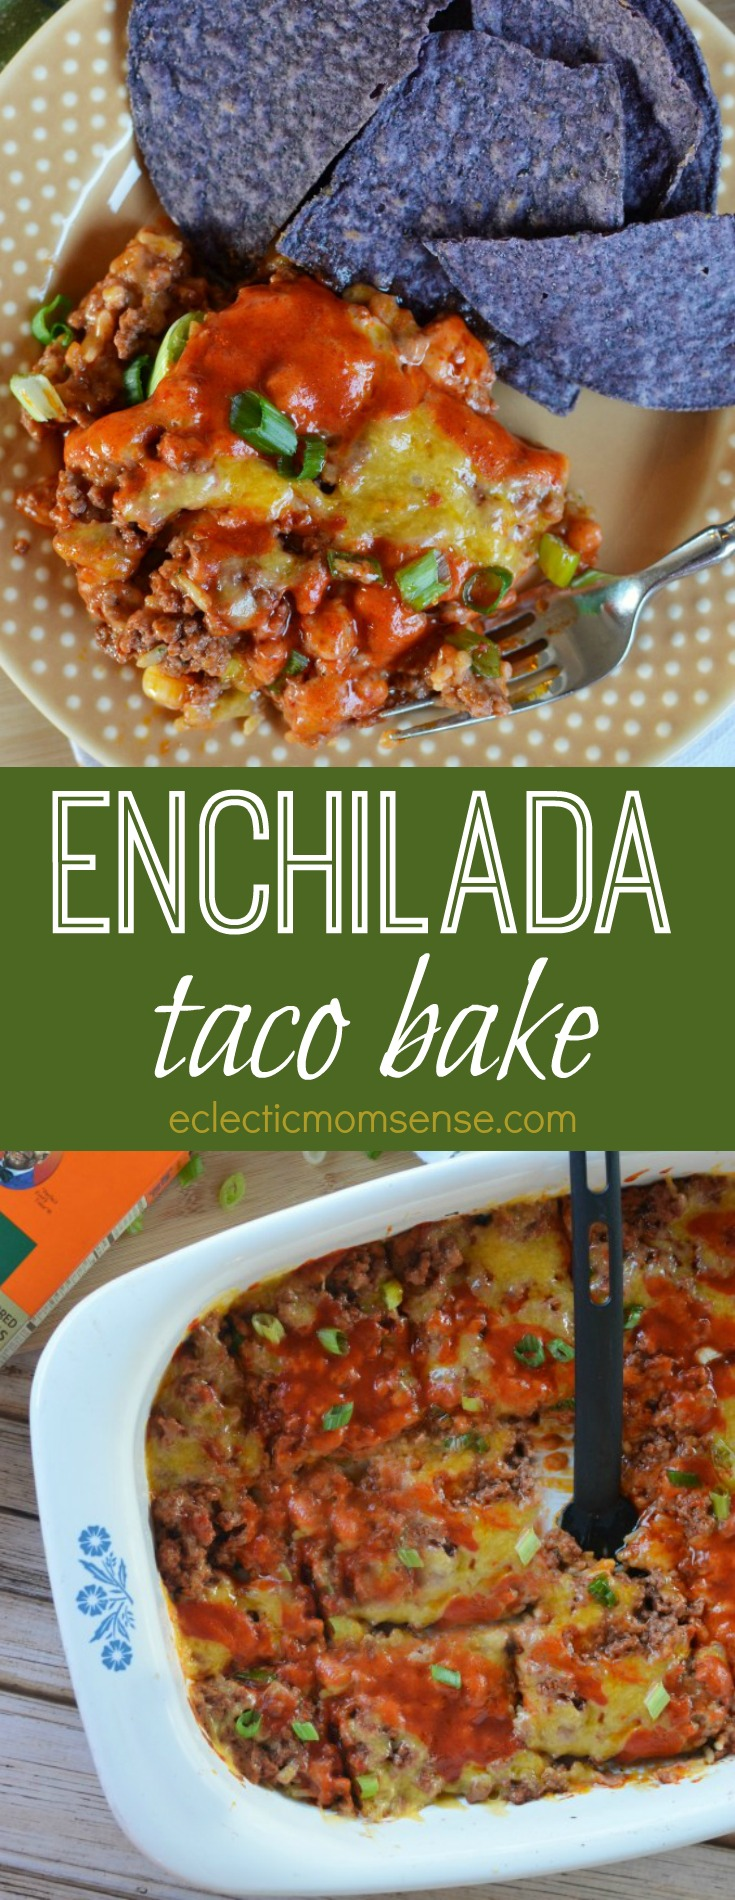 A simple layered casserole dish loaded with flavor | Enchilada Taco Bake | #recipe